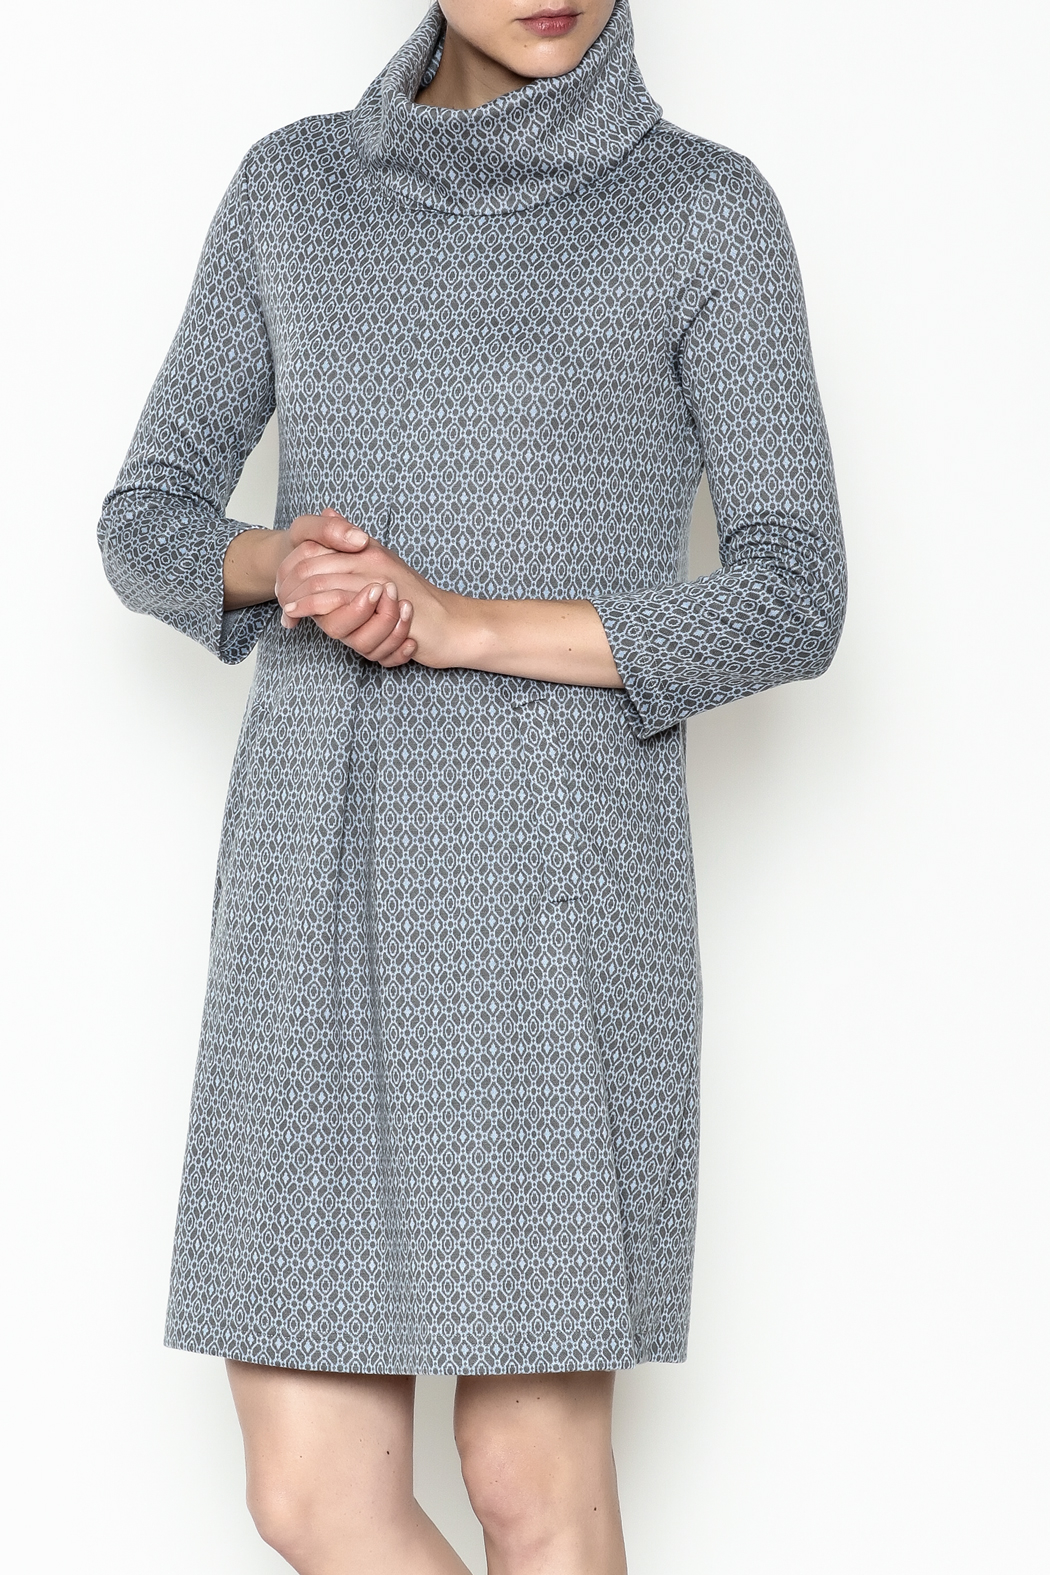 Tyler Boe Kim Cowl Dress - Front Cropped Image